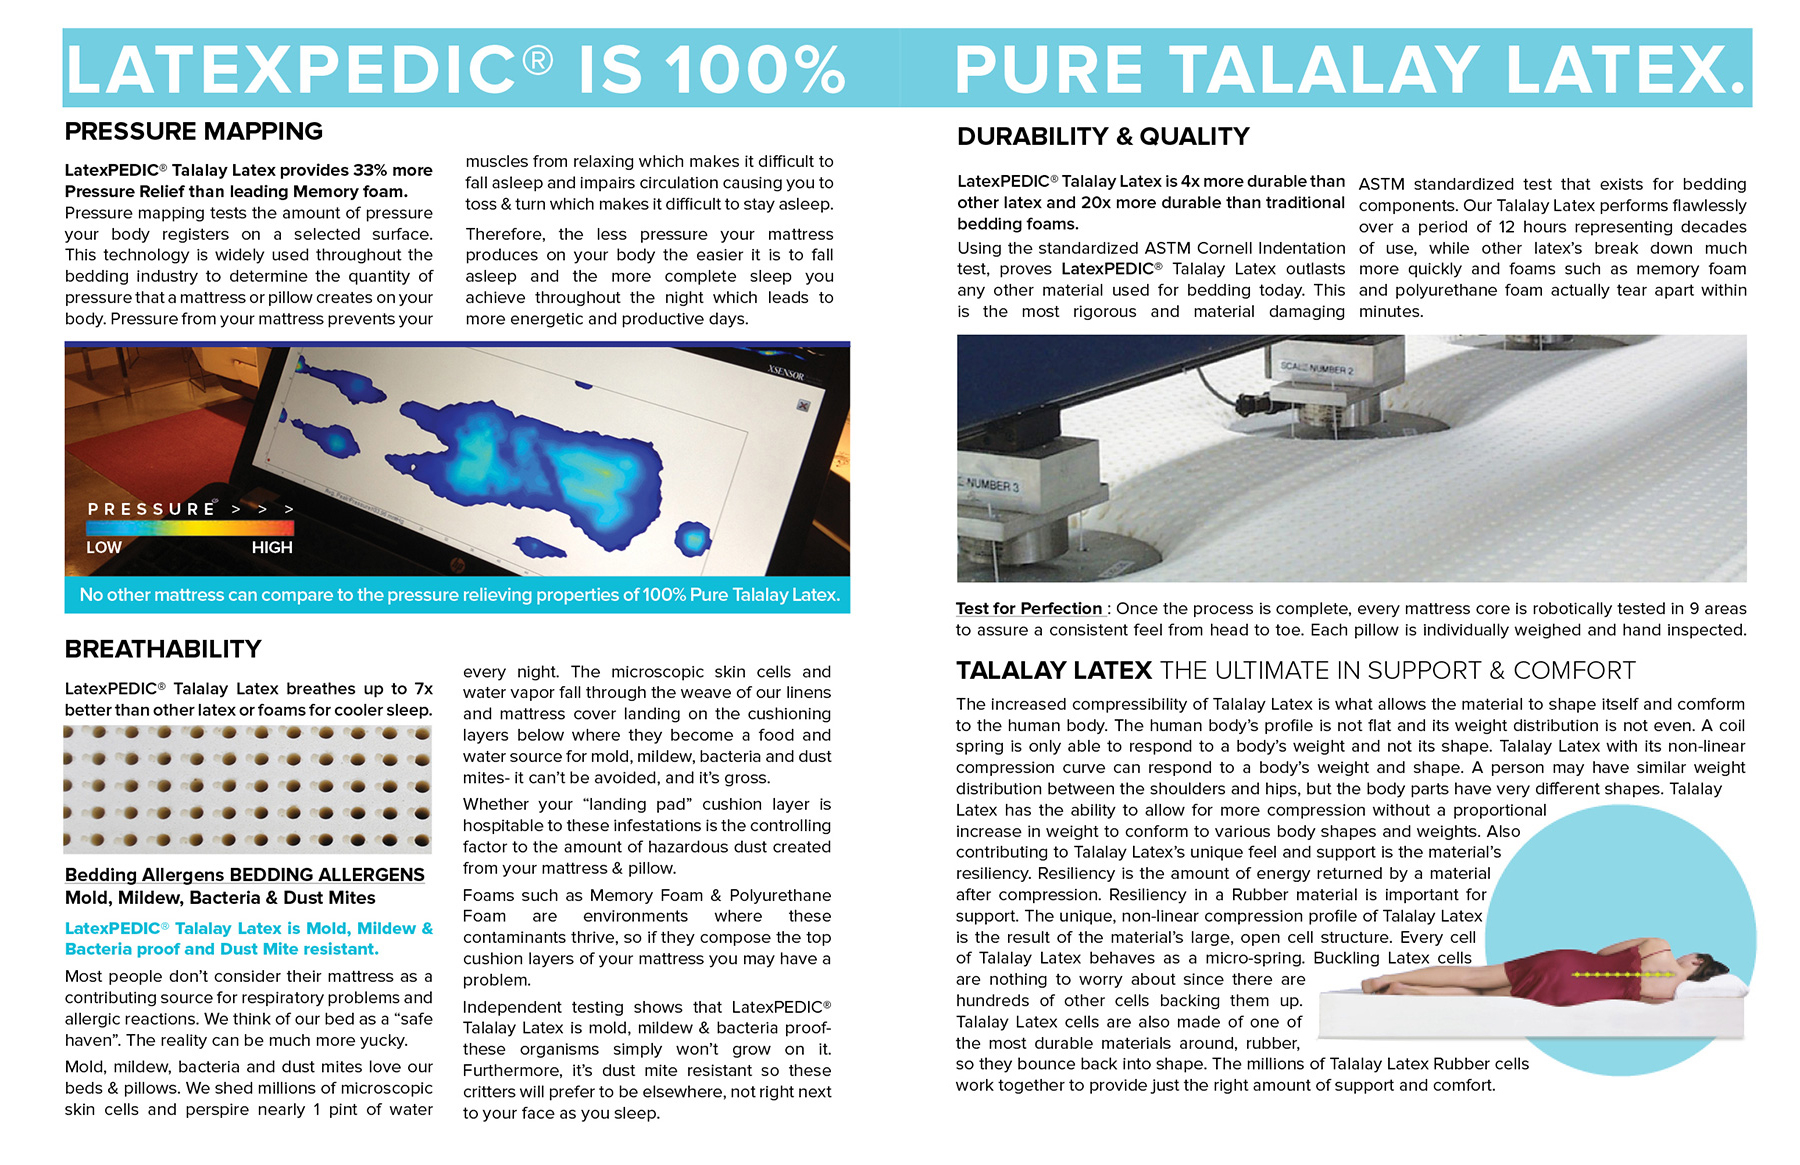 Talalay Latex Phoenix Adjustable Beds are available in Twin, Full, Queen, King and Split Dual King and Split Dual King.  The Factory's for ELECTRIC HEALTHCARE Adjustable Beds are Electropedic (WH1, WH